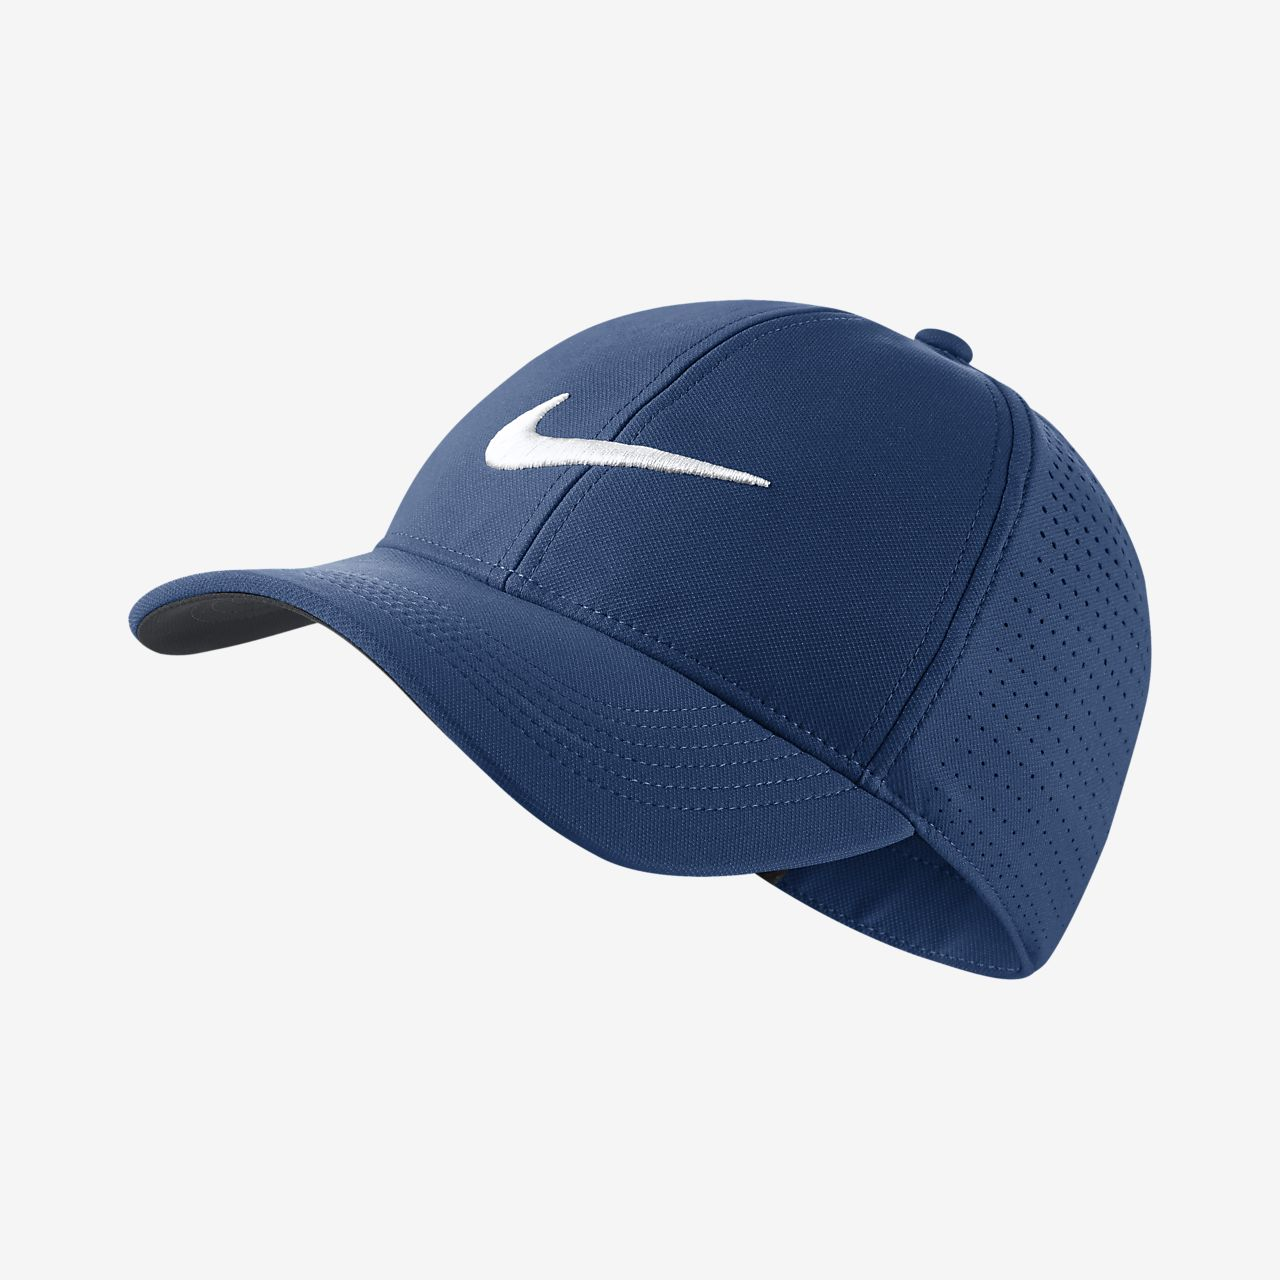 nike legacy 91 perforated adjustable golf hat nike com